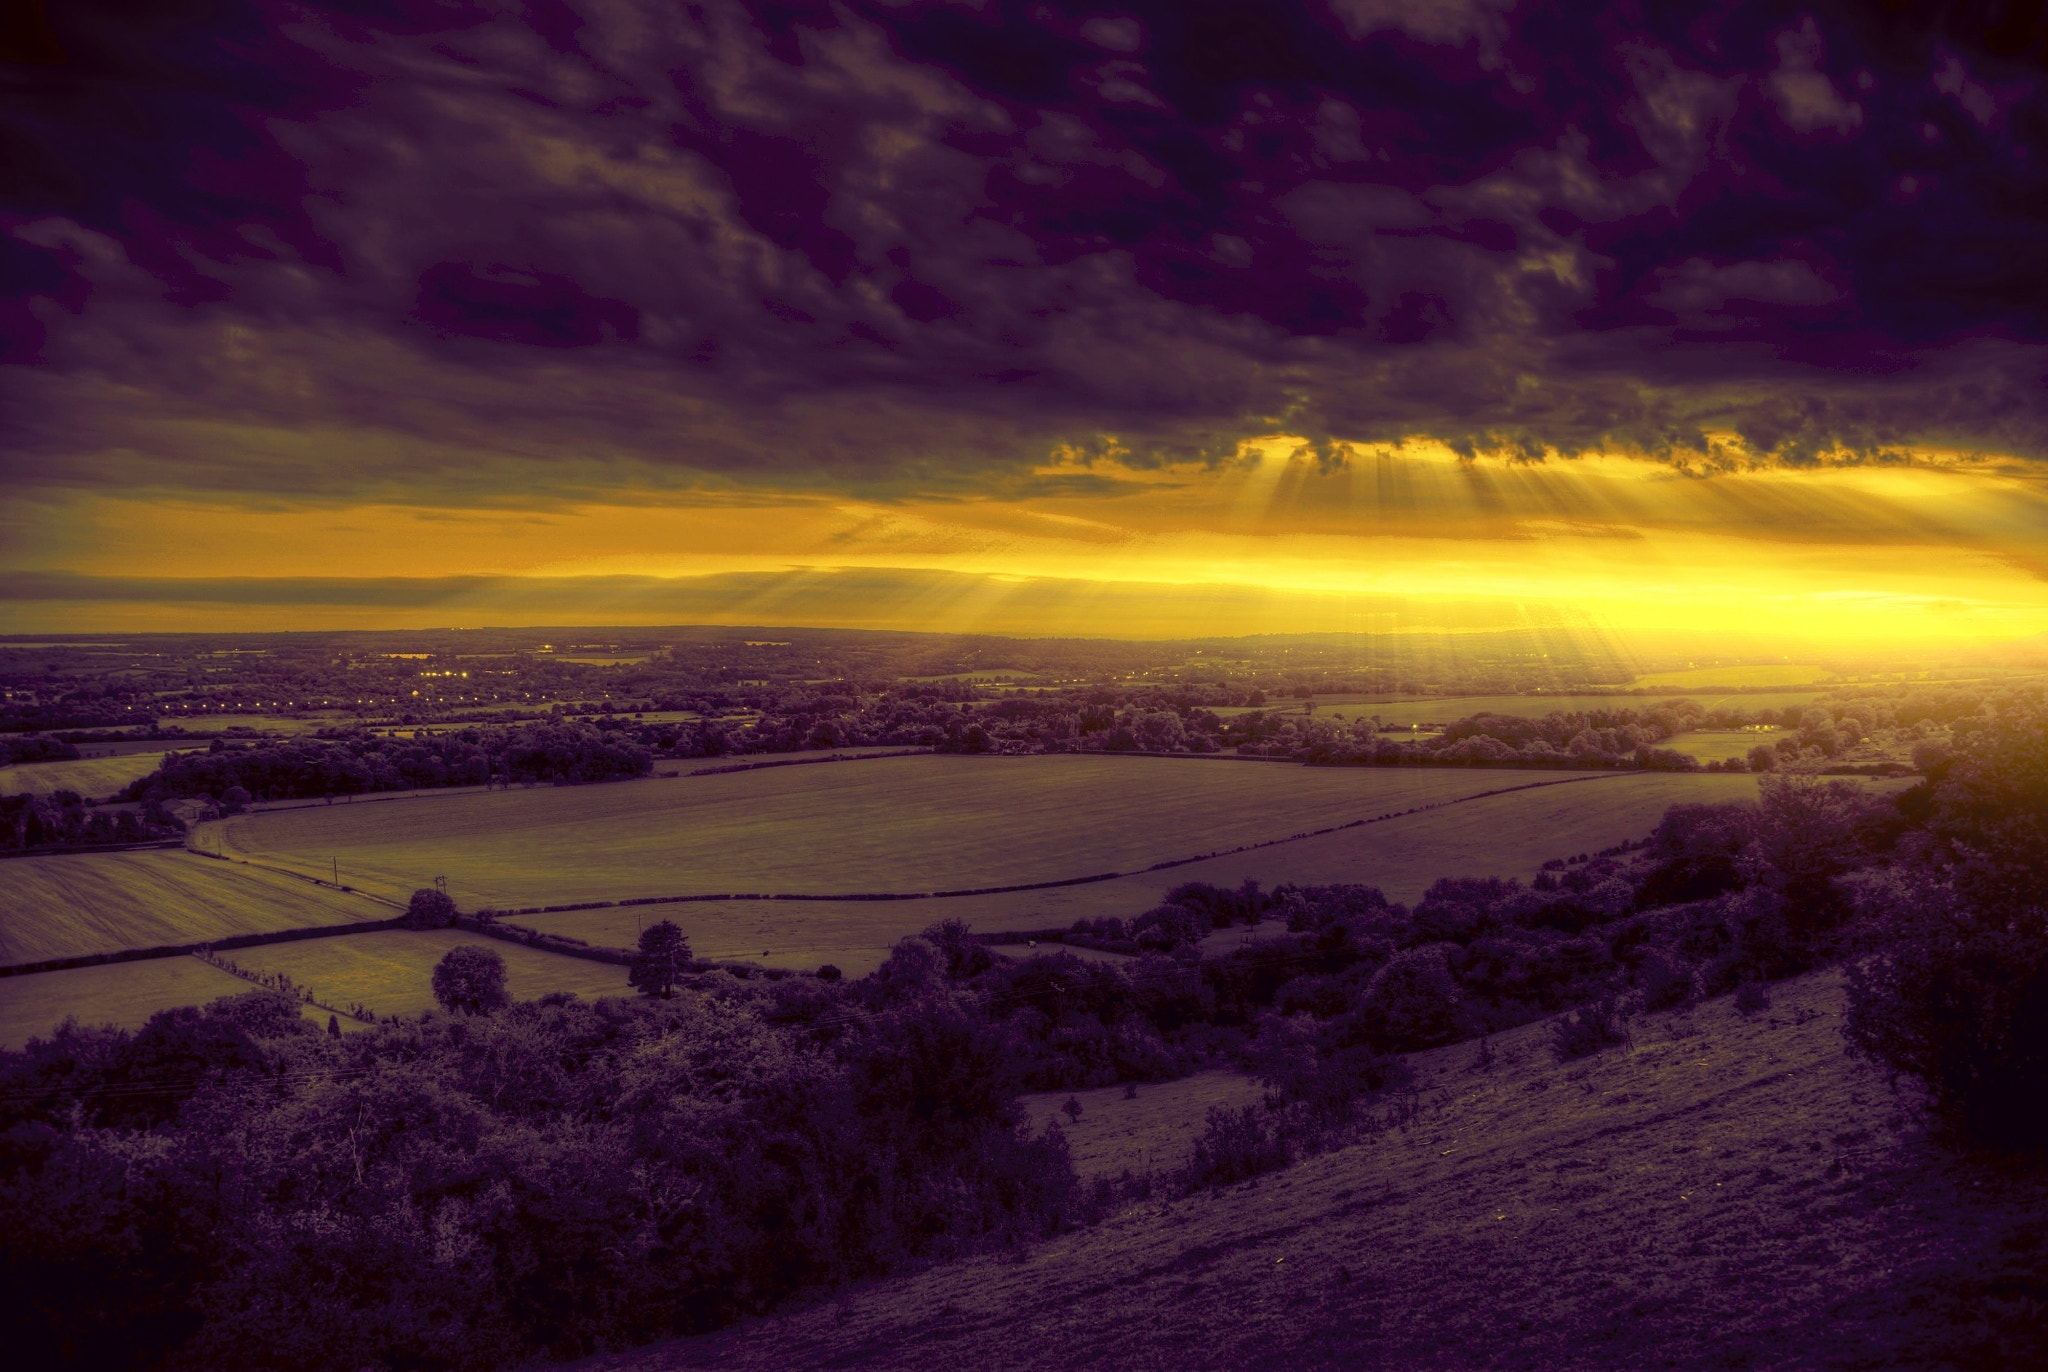 Photograph Sundown over downs by Phil Martin on 500px